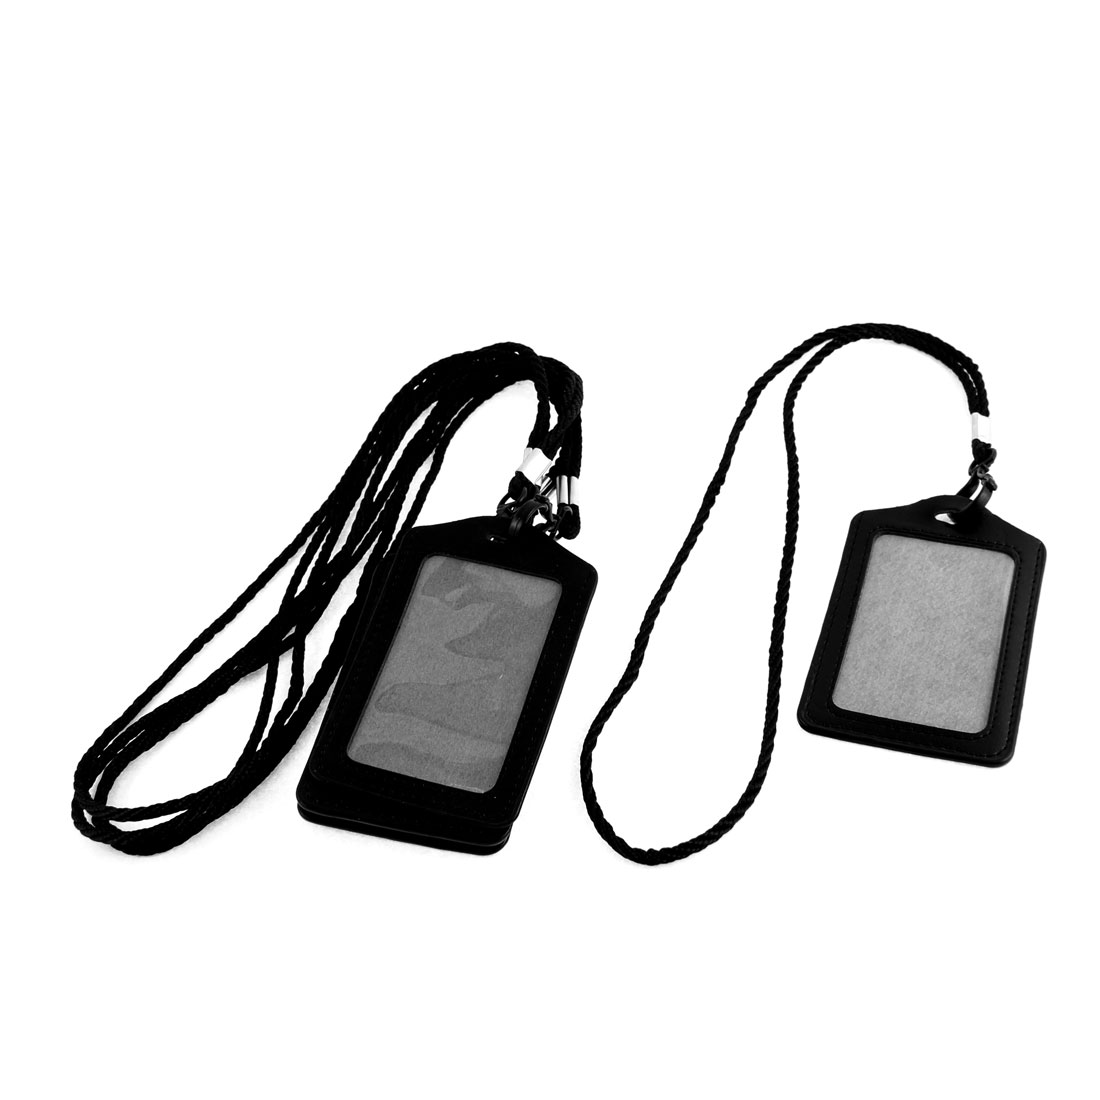 Faux Leather Vertical Design Lanyard Company Name Badge Card Holder Black 5pcs